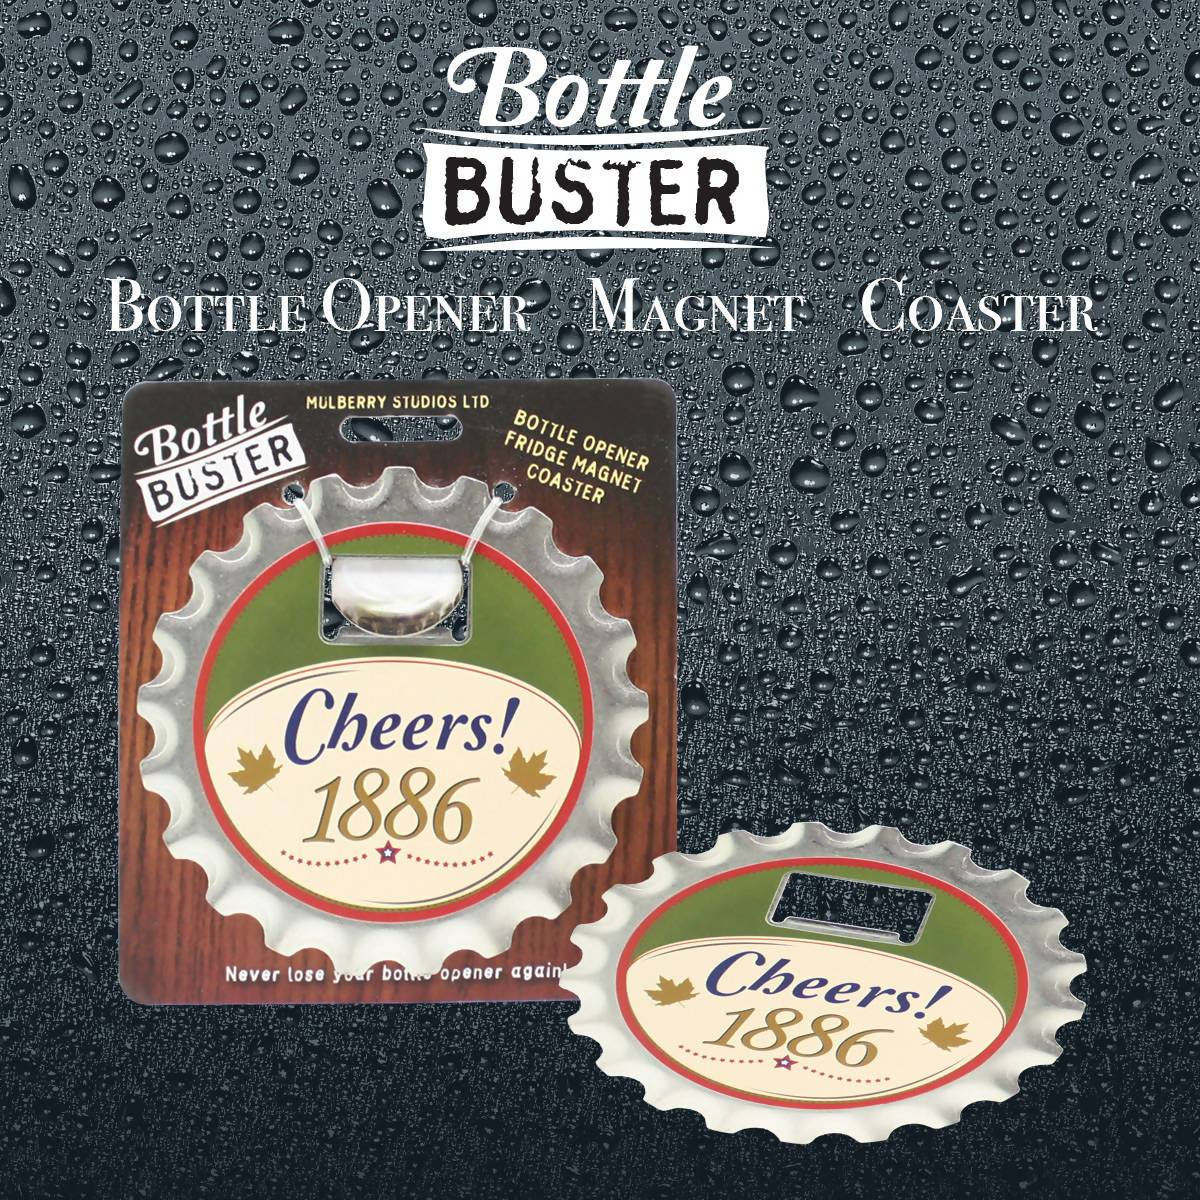 BOTTLE BUSTER - Best Bottle Opener : Cheers - Bottle Openers - La Belle Collection - Naiise